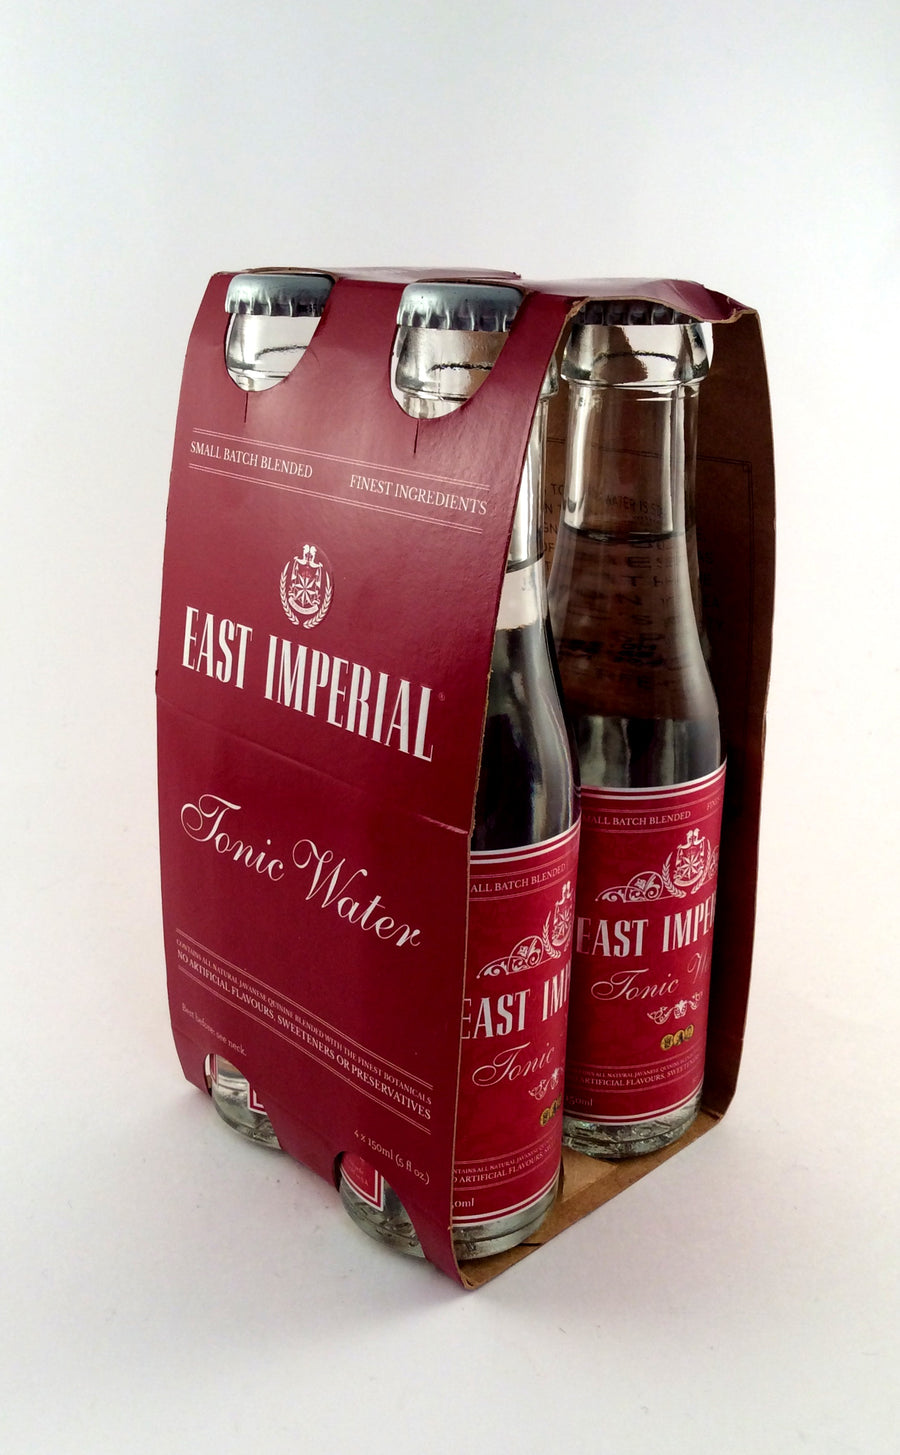 East Imperial Red Burma Tonic 4 pack